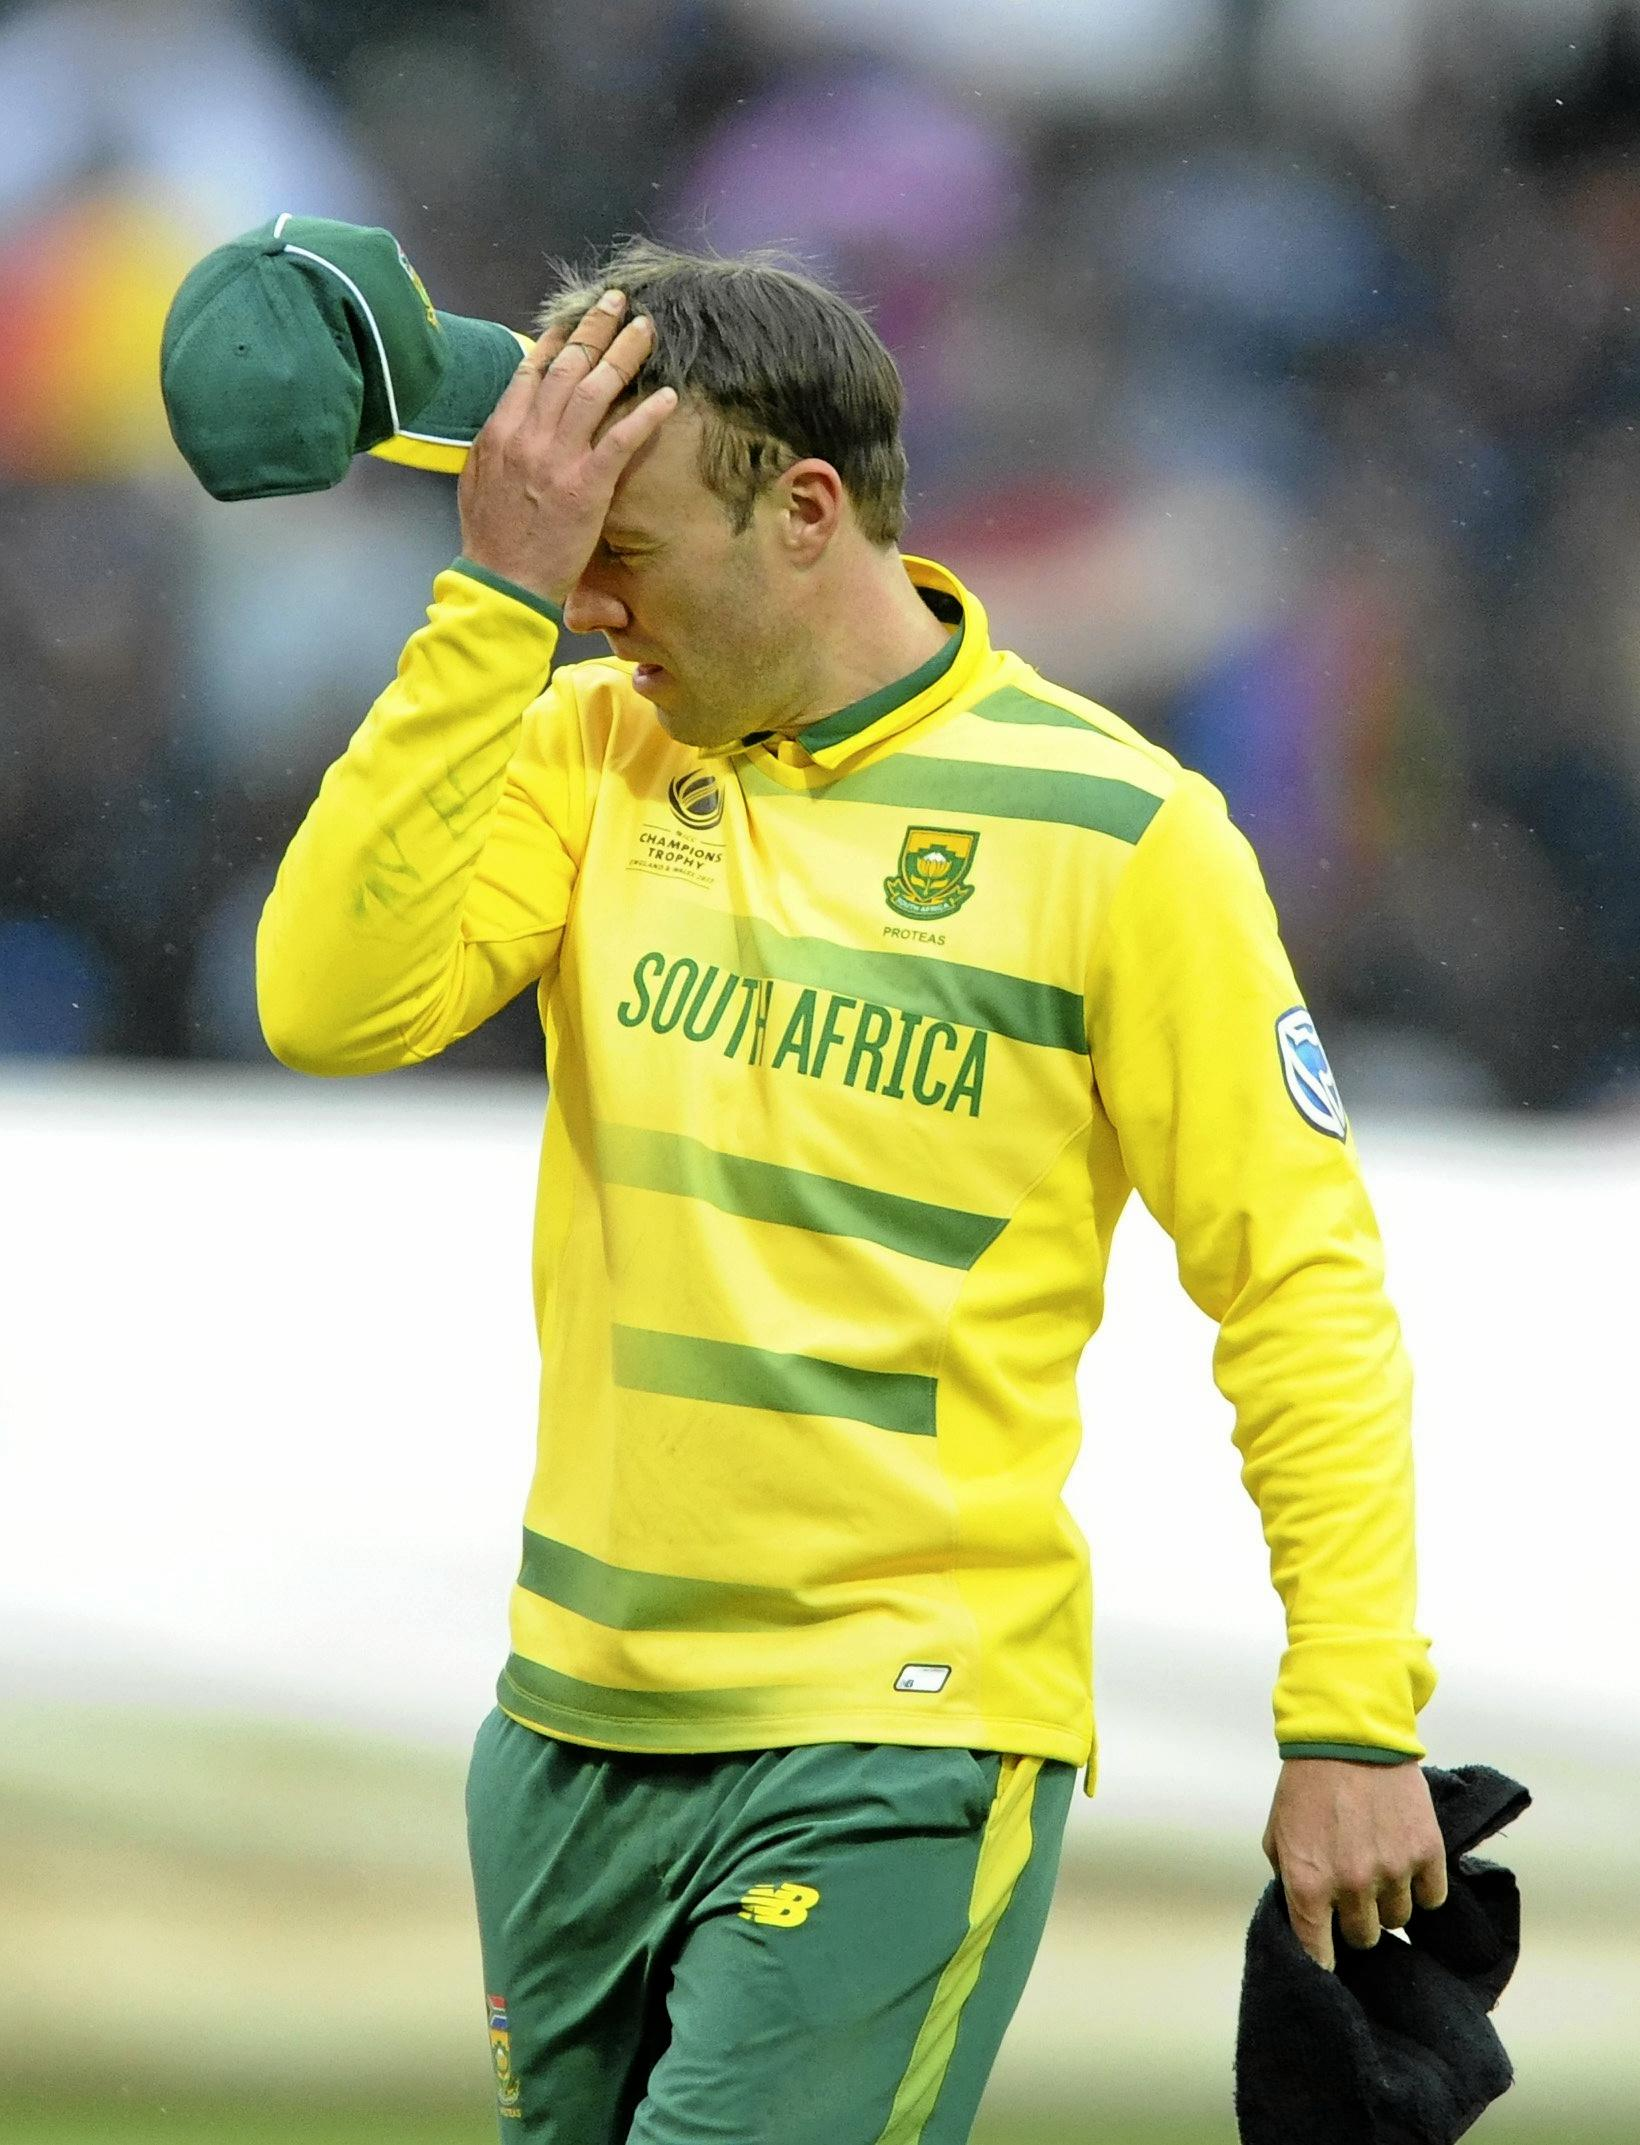 South Africa captain AB De Villiers was left ruing mistakes in the Champions Trophy.